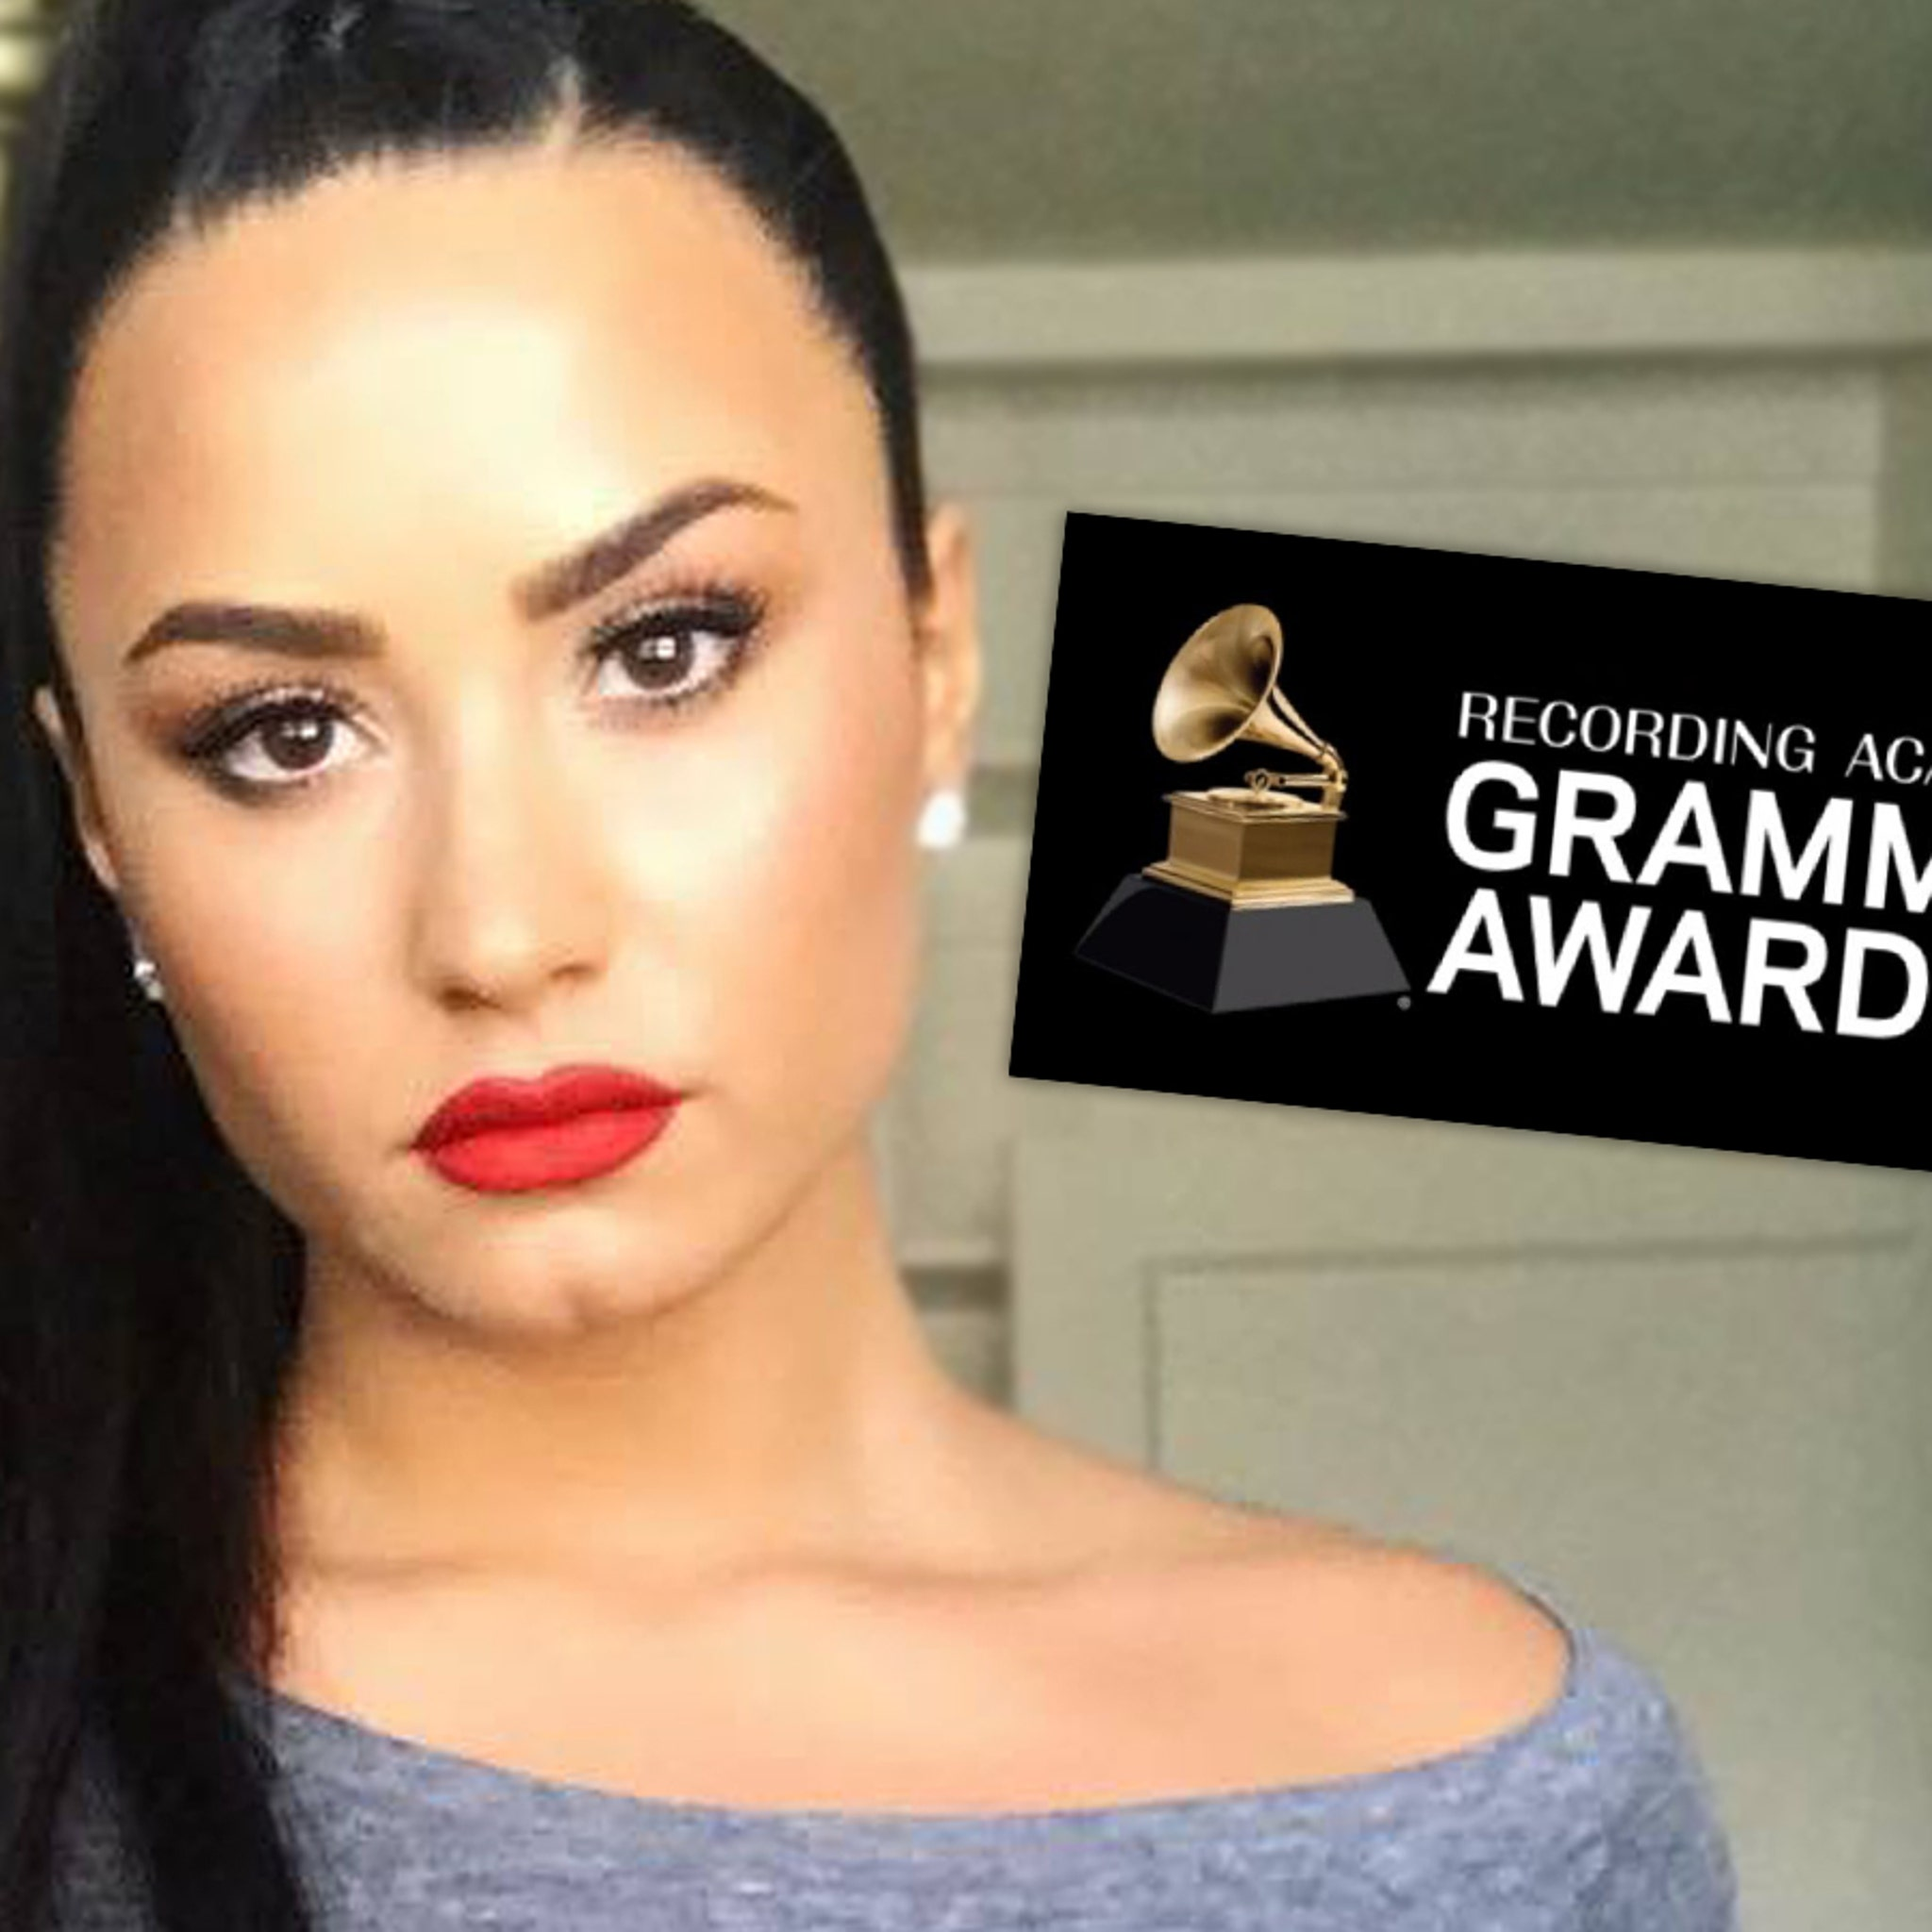 Demi Lovato Will Perform Song She Wrote Days Before OD at Grammys